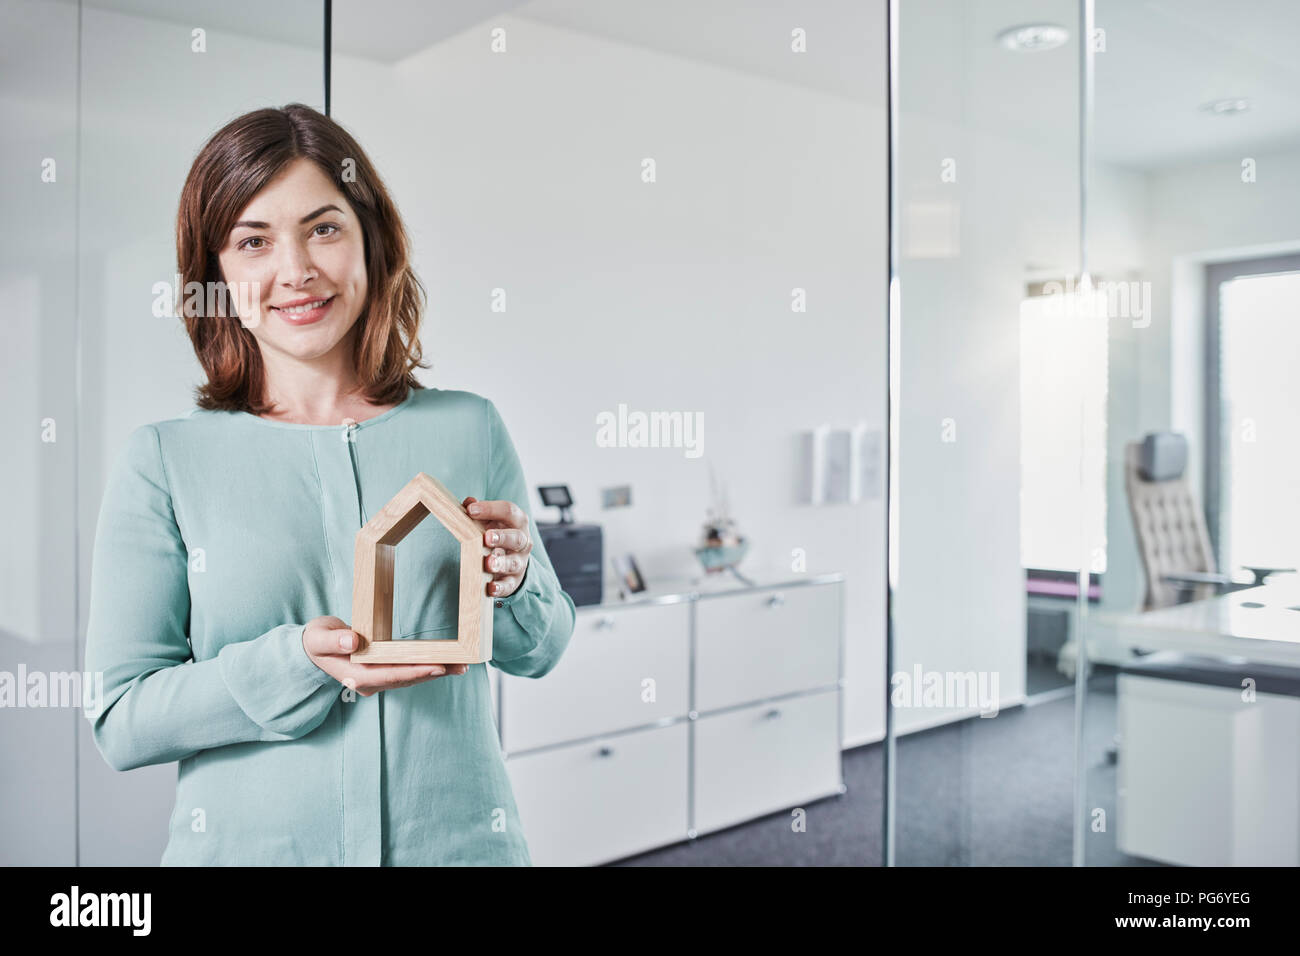 Portrait of smiling young businesswoman holding architectural model in office - Stock Image